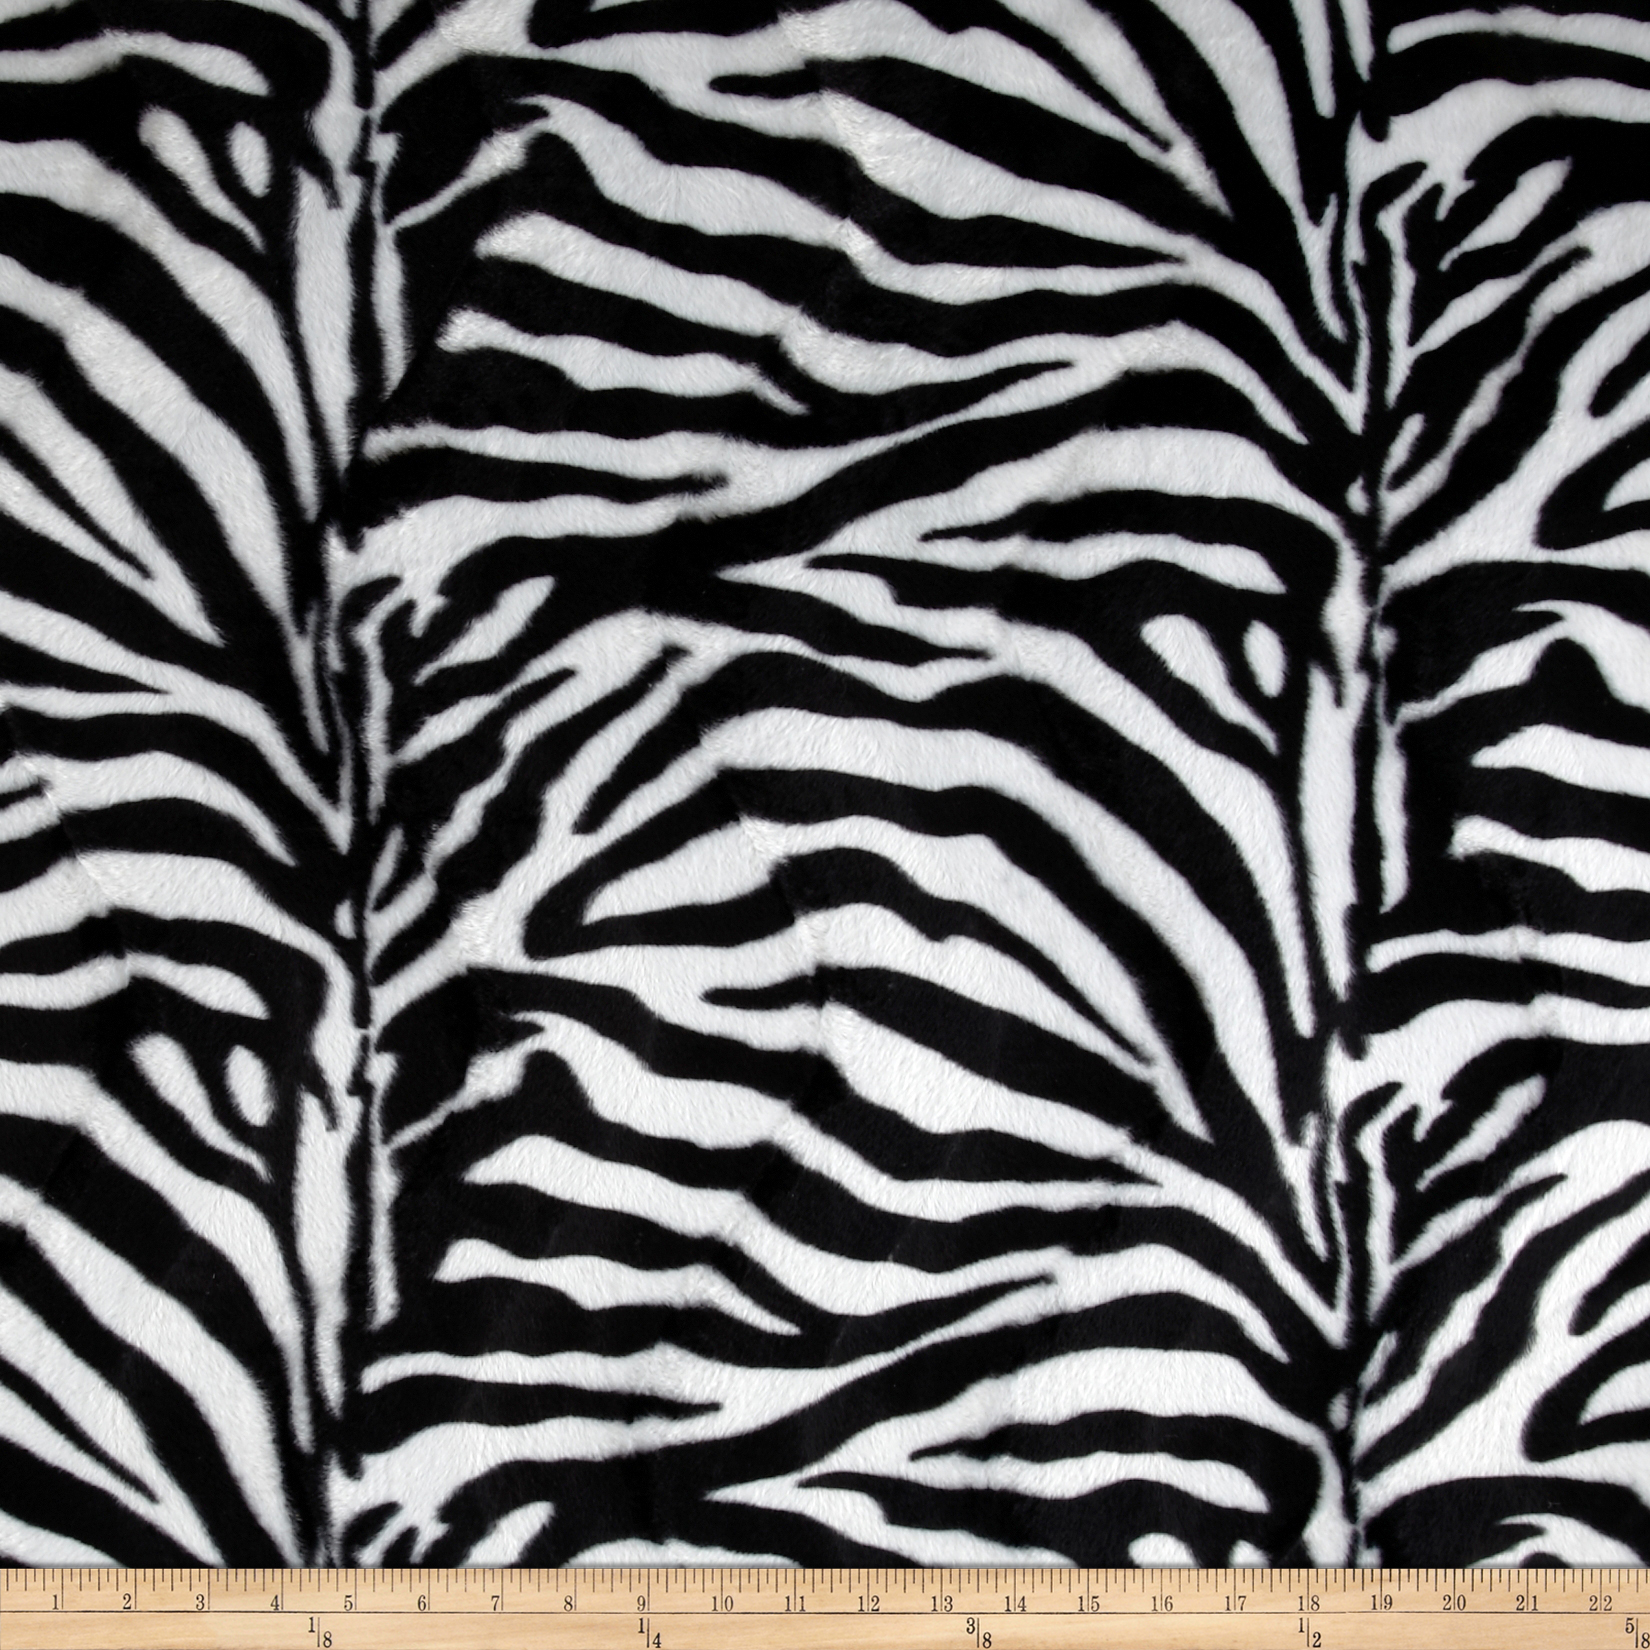 Velboa Faux Fur Zebra White/Black Fabric